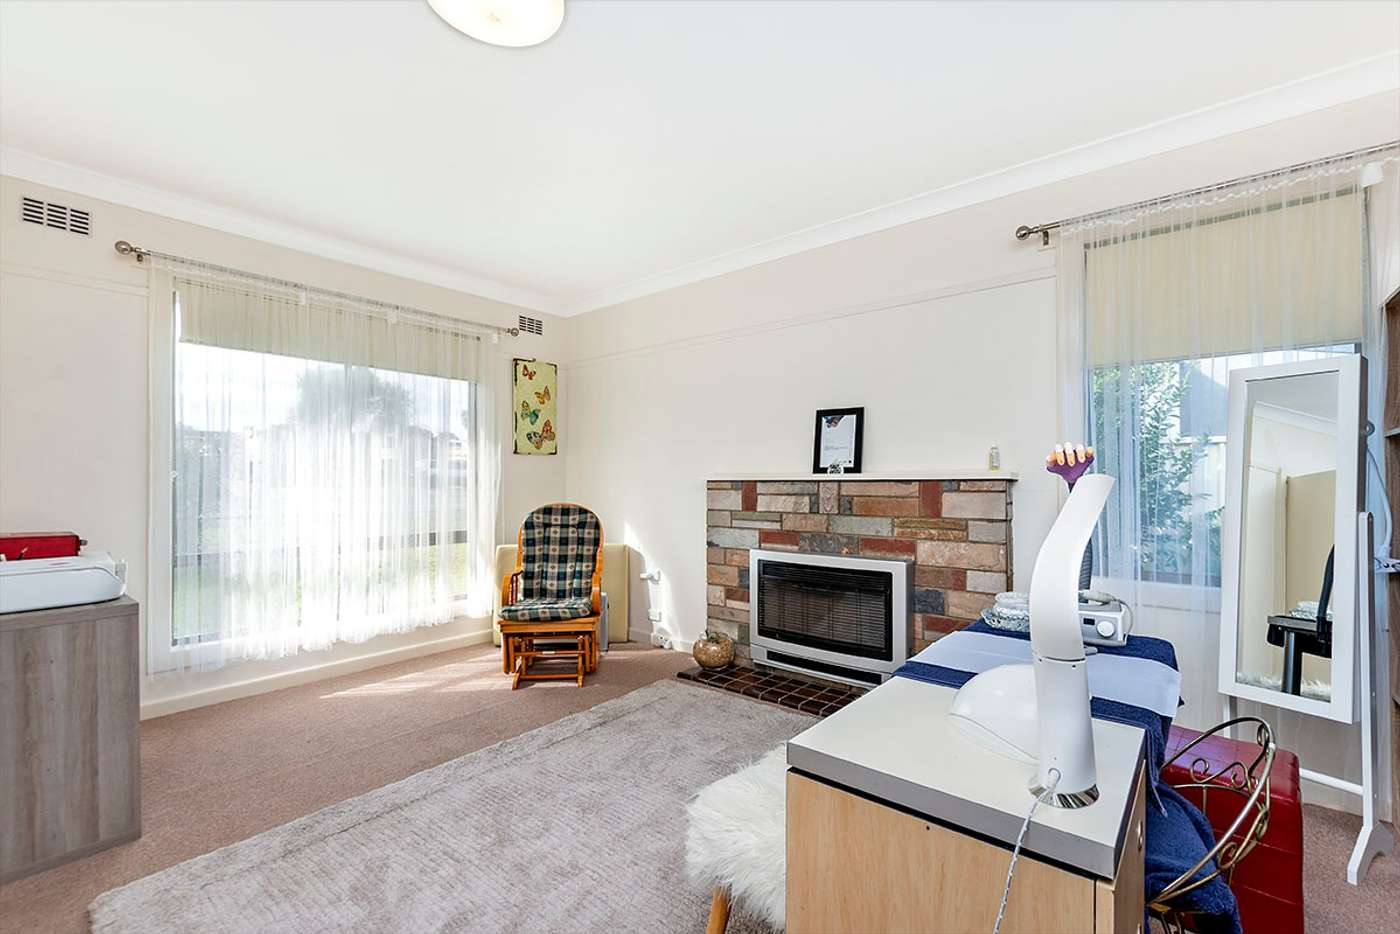 Fifth view of Homely house listing, 193 Percy Street, Portland VIC 3305